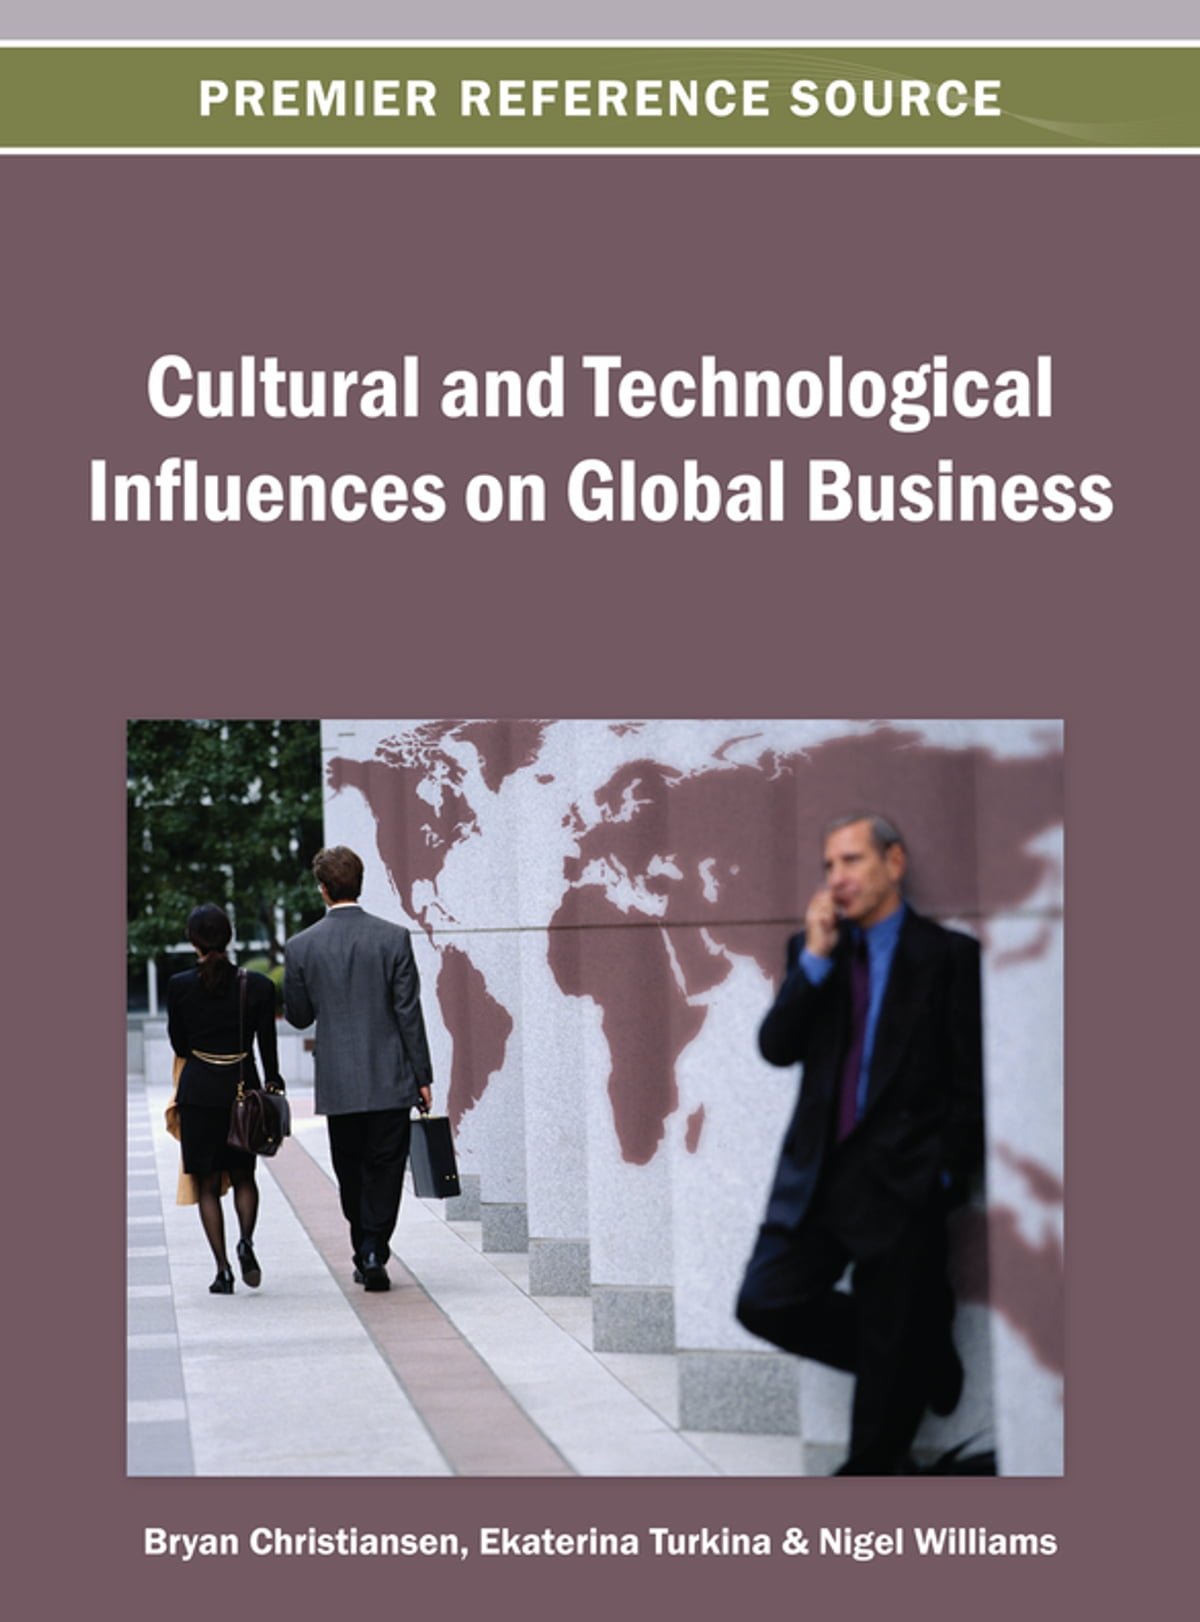 a study on global culture and modern technology influence In today's technology driven world, people expect to have the means to communicate with others at any given moment the ability to create relationships based solely on mutual understandings and shared common interests have fed the social media phenomena.